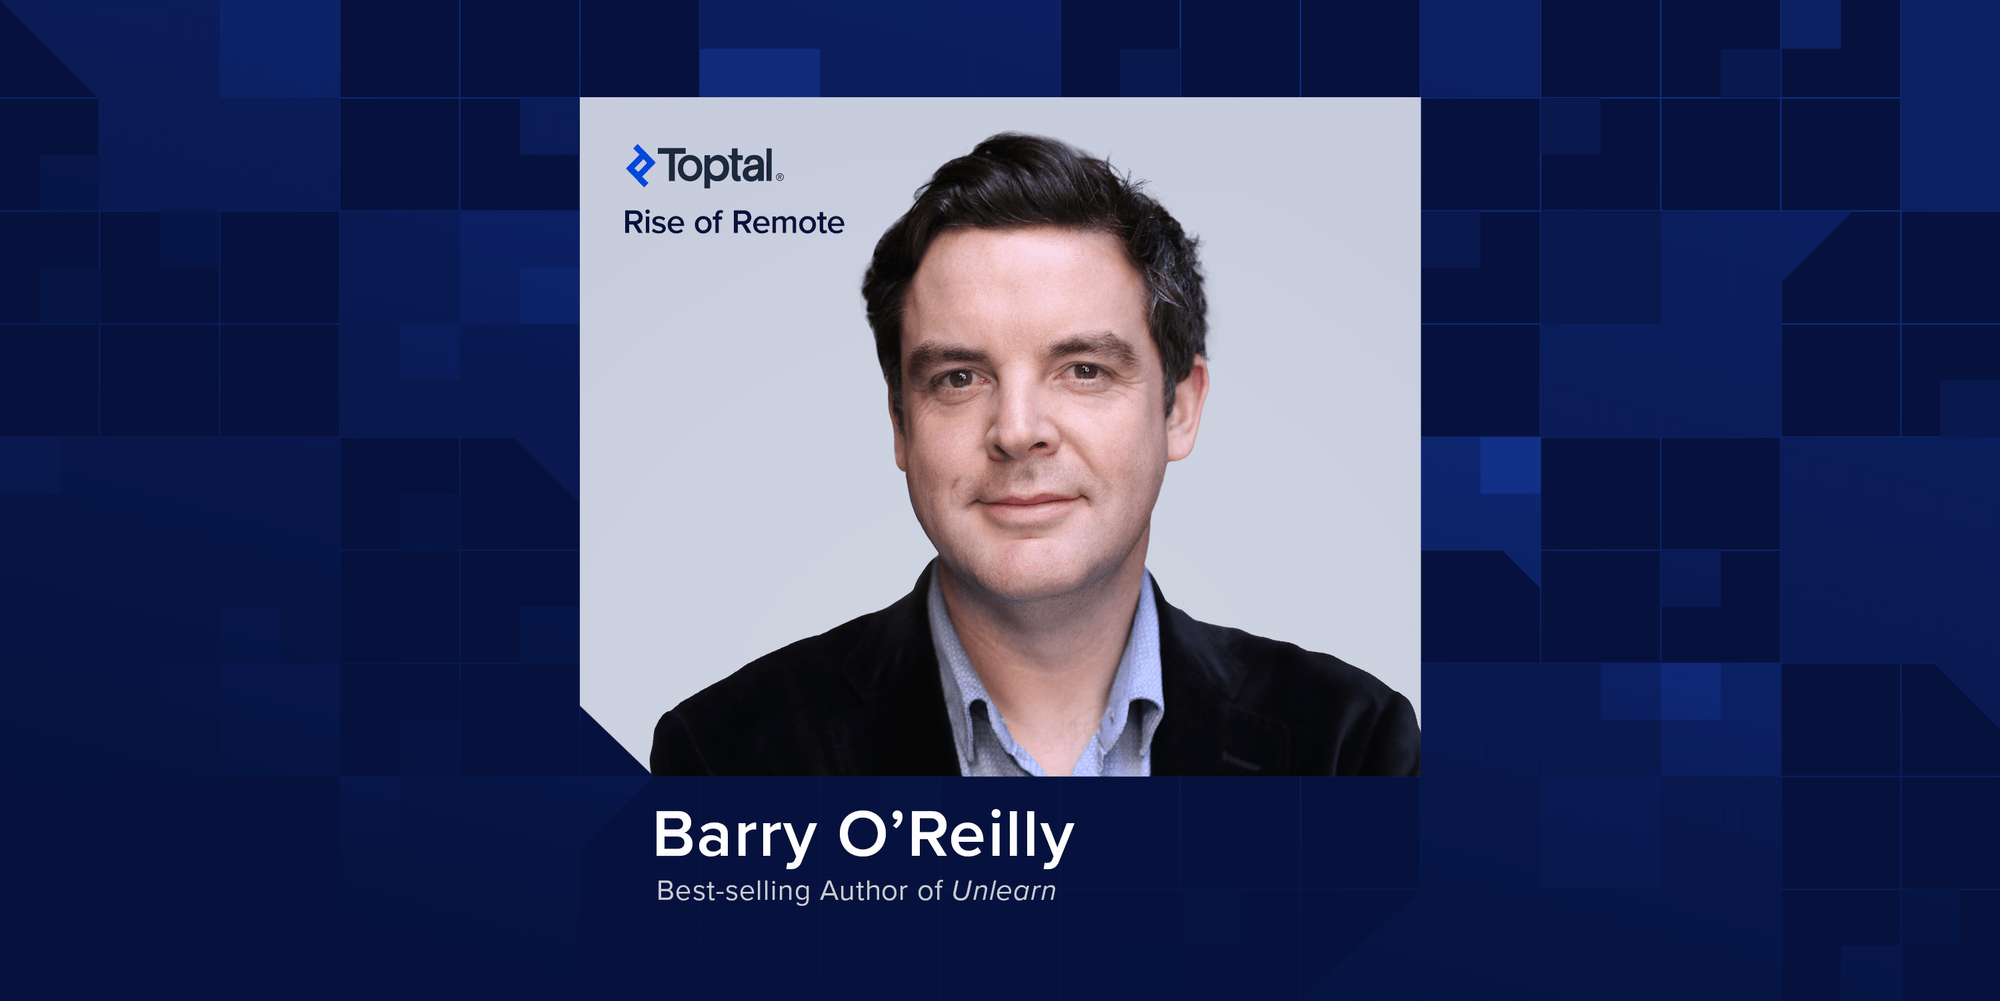 The Importance of Learning and Unlearning: A Q&A with Barry O'Reilly